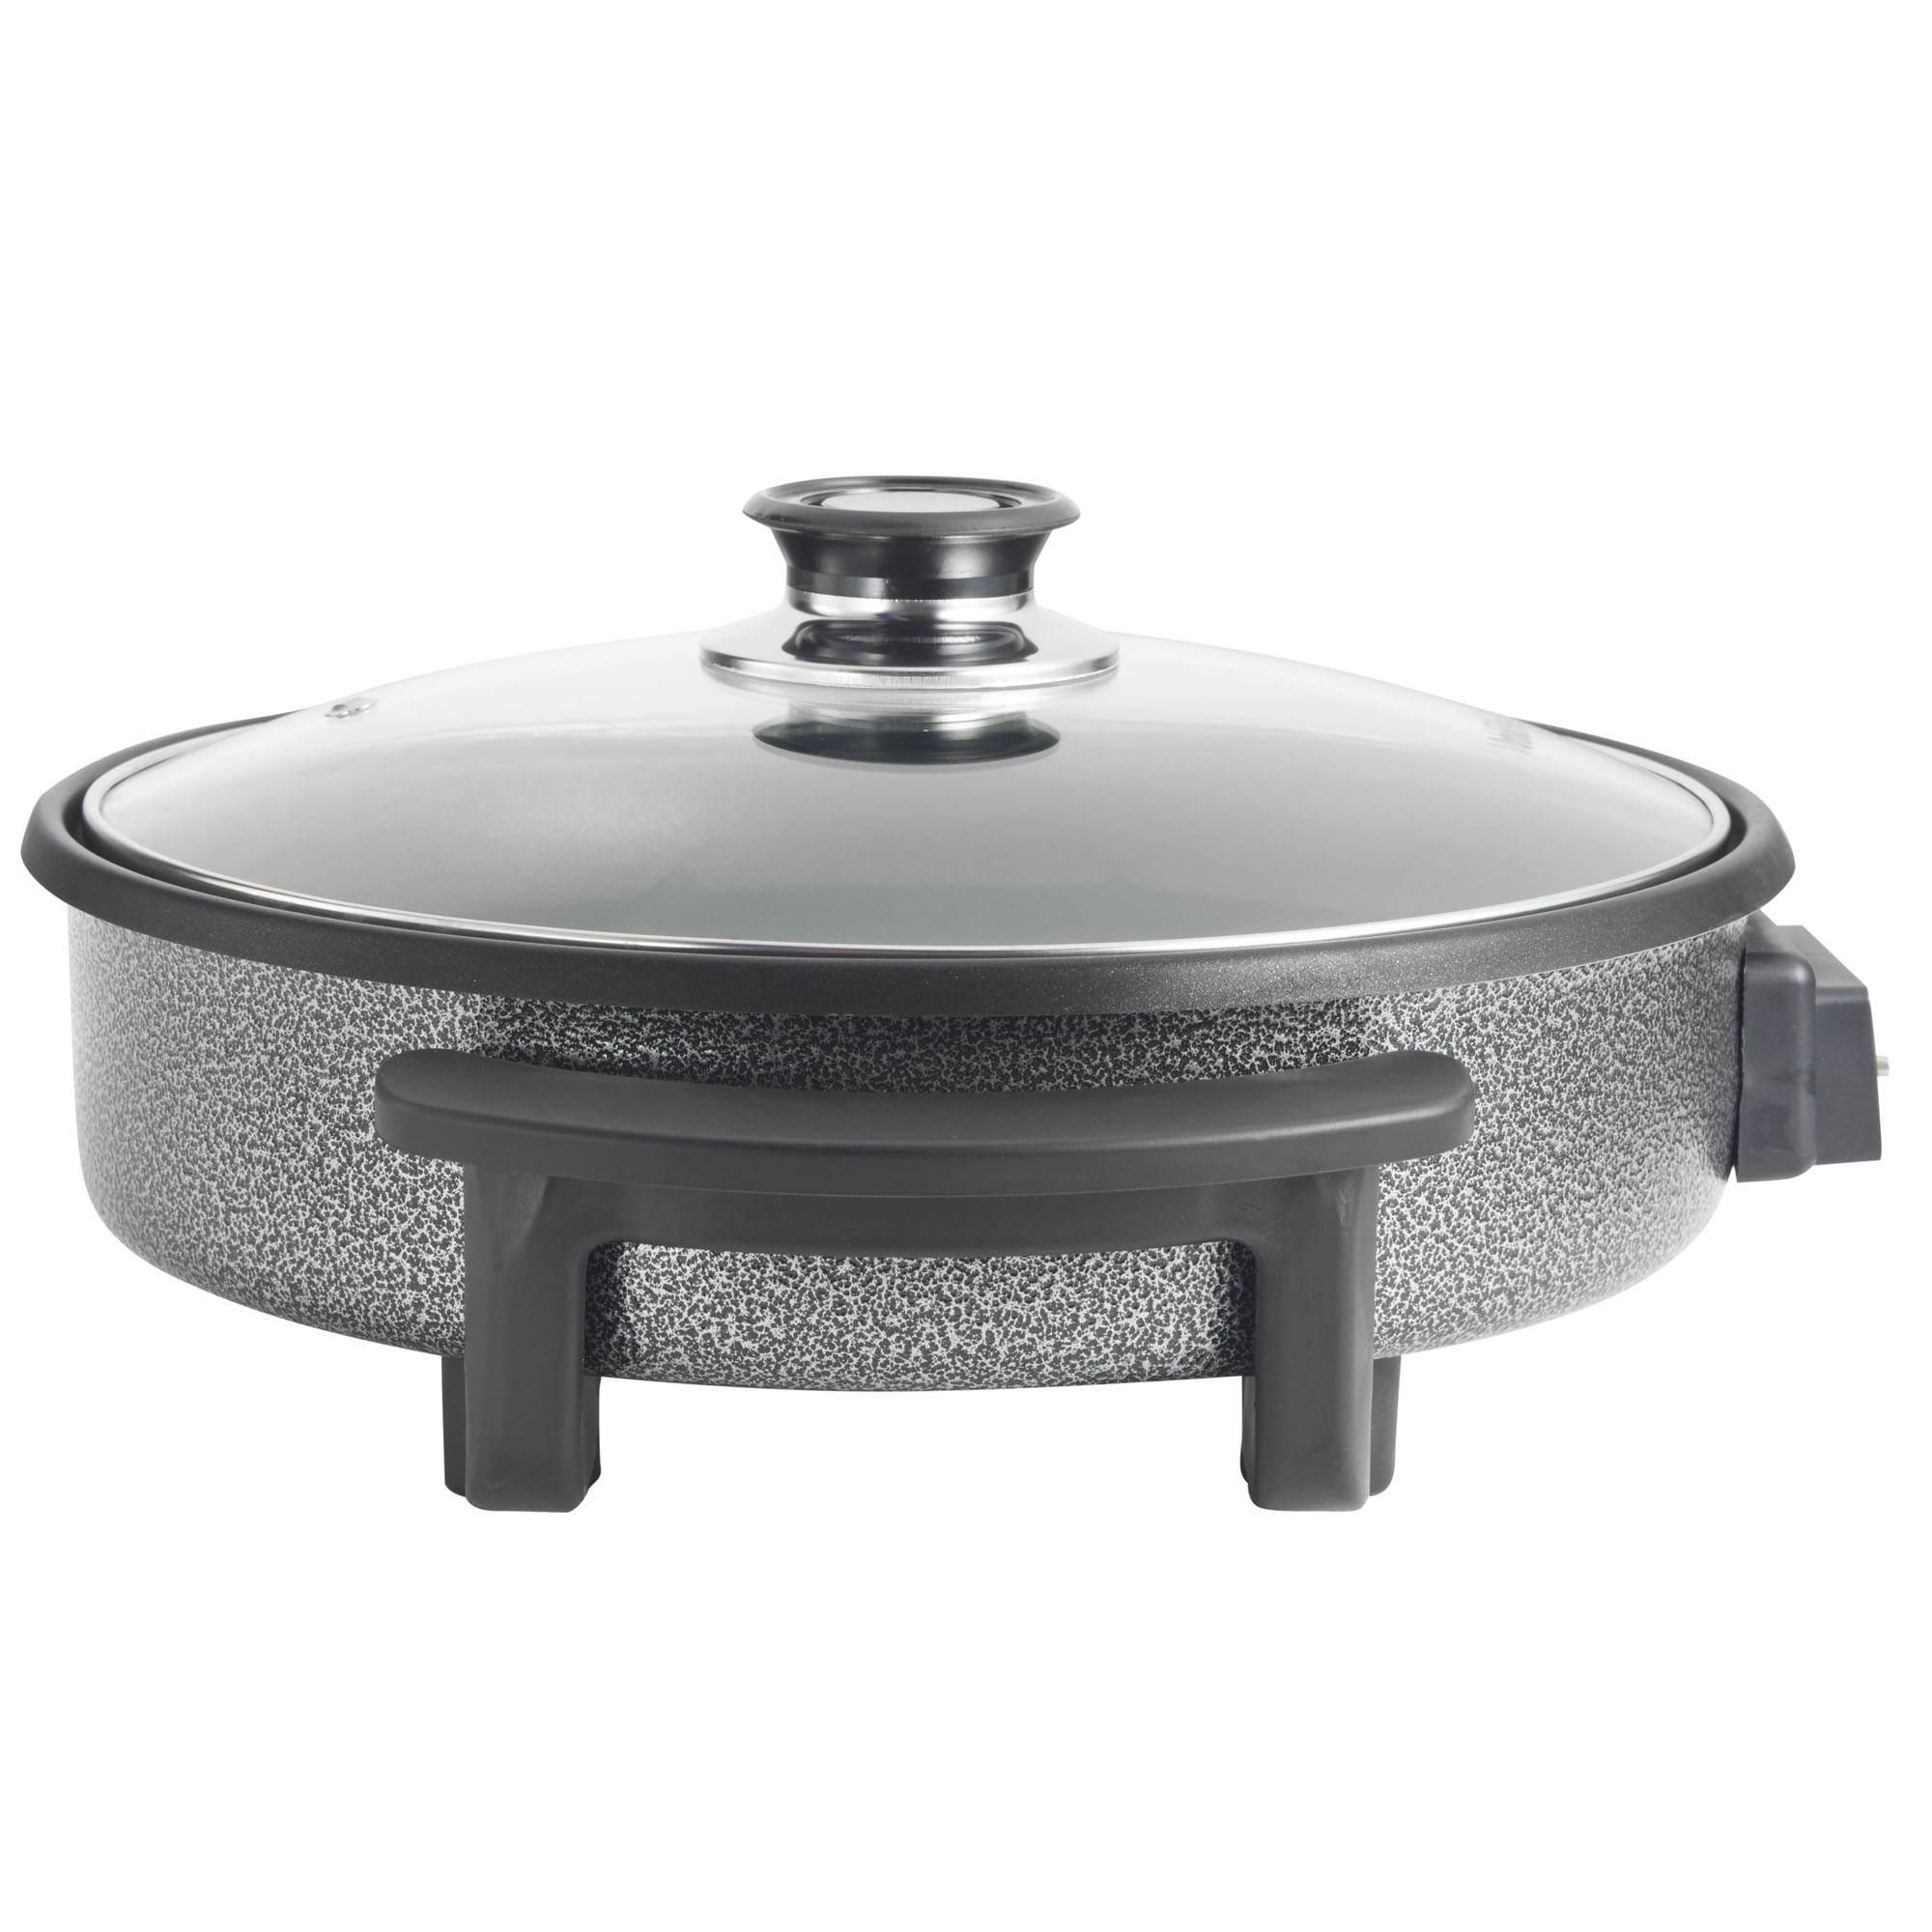 Large Electric Frying Pan With Lid